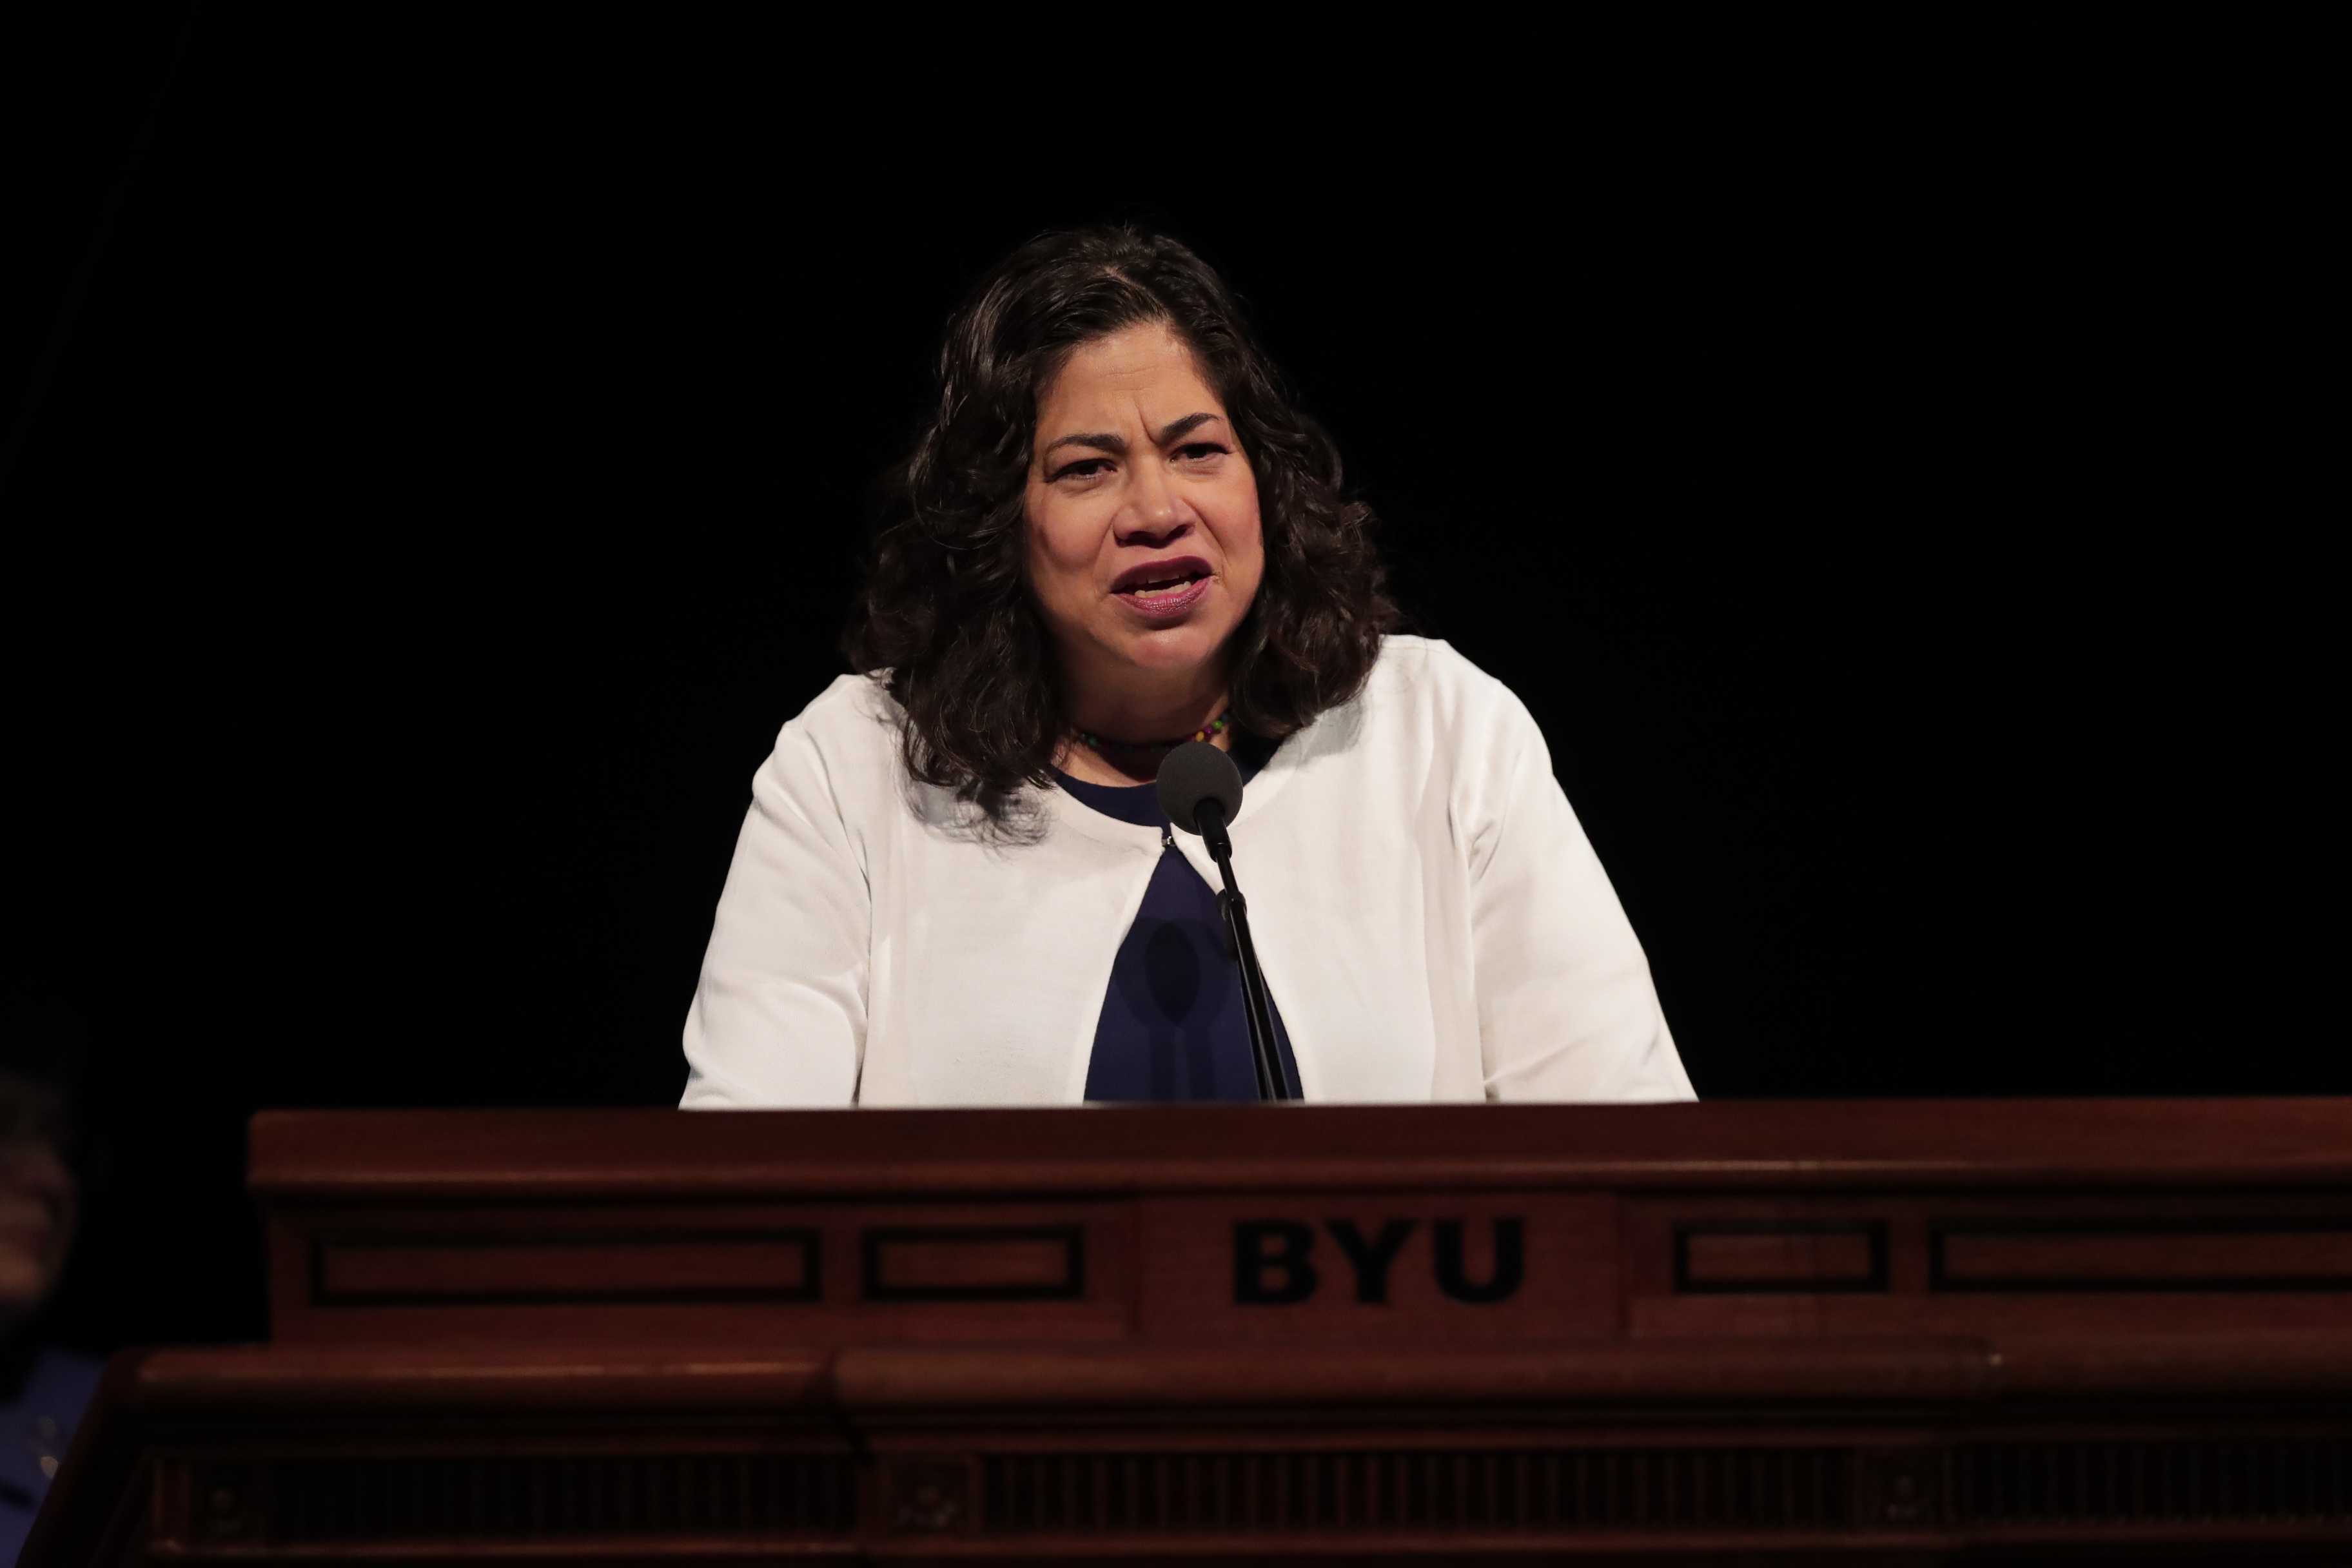 Sister Reyna I. Aburto, second counselor in the Relief Society general presidency, speaks during a session of the BYU Women's Conference at the Marriott Center on May 2, 2019.